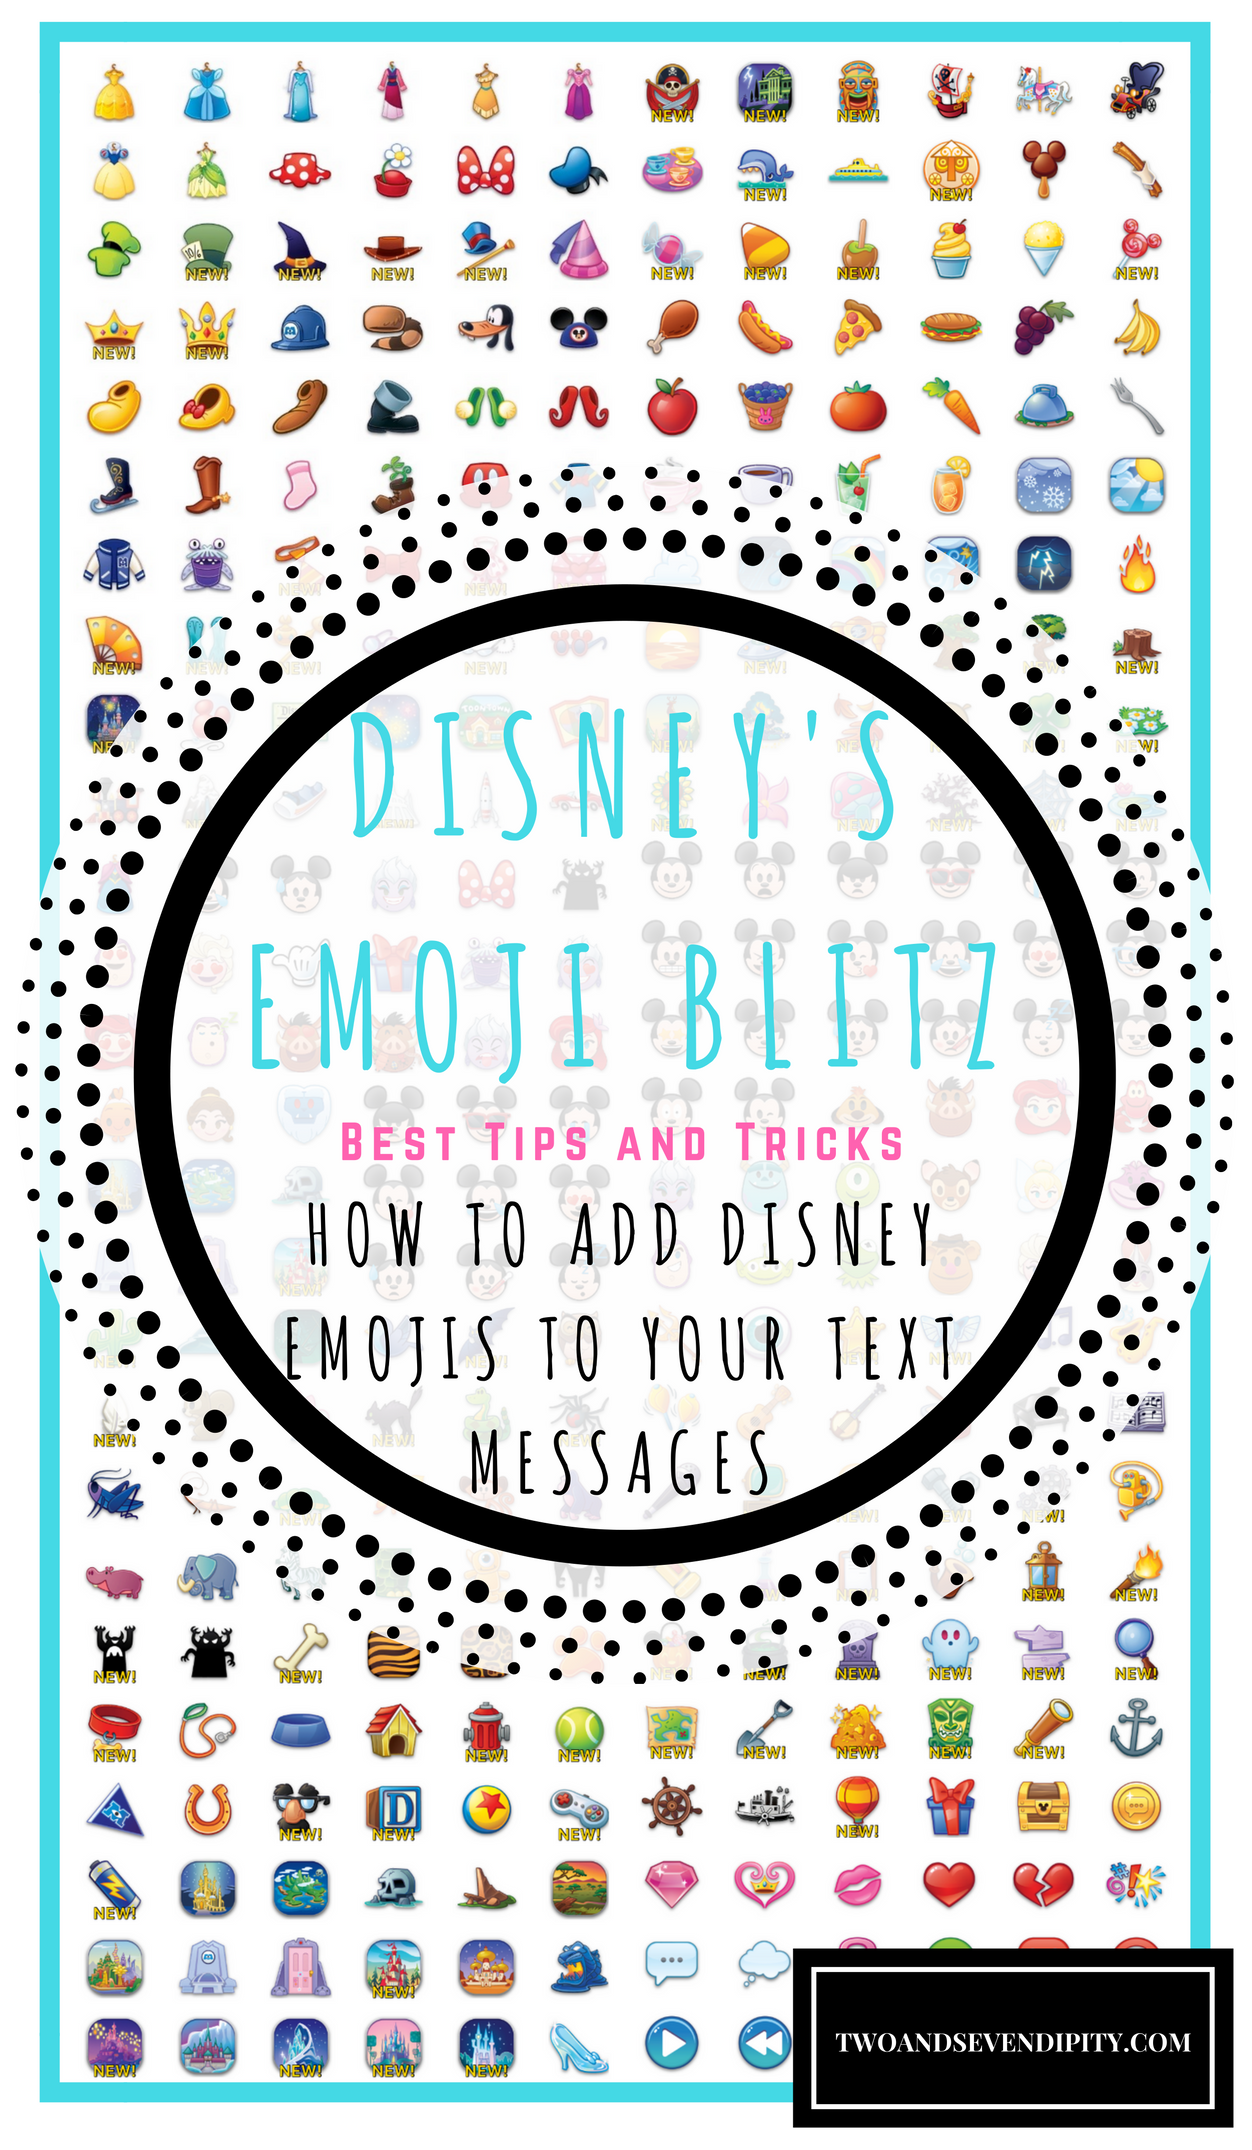 The compelling thing about the disney emoji blitz game is that you best tips and tricks on the disney emoji blitz app two and sevendipity buycottarizona